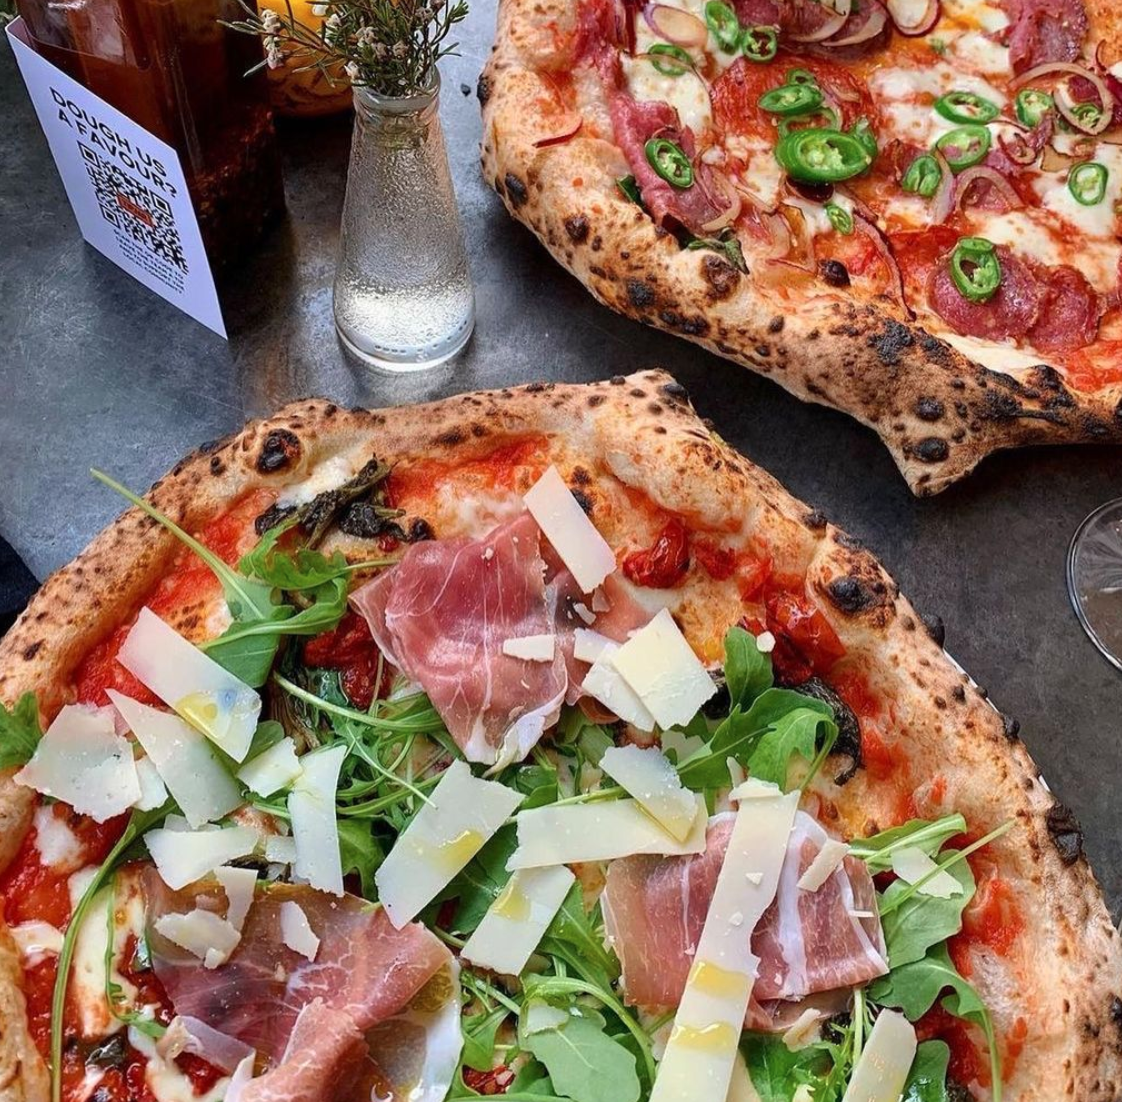 You can get pizzas from Rudy's, American Pies and Double Zero for 6p on Deliveroo today, The Manc